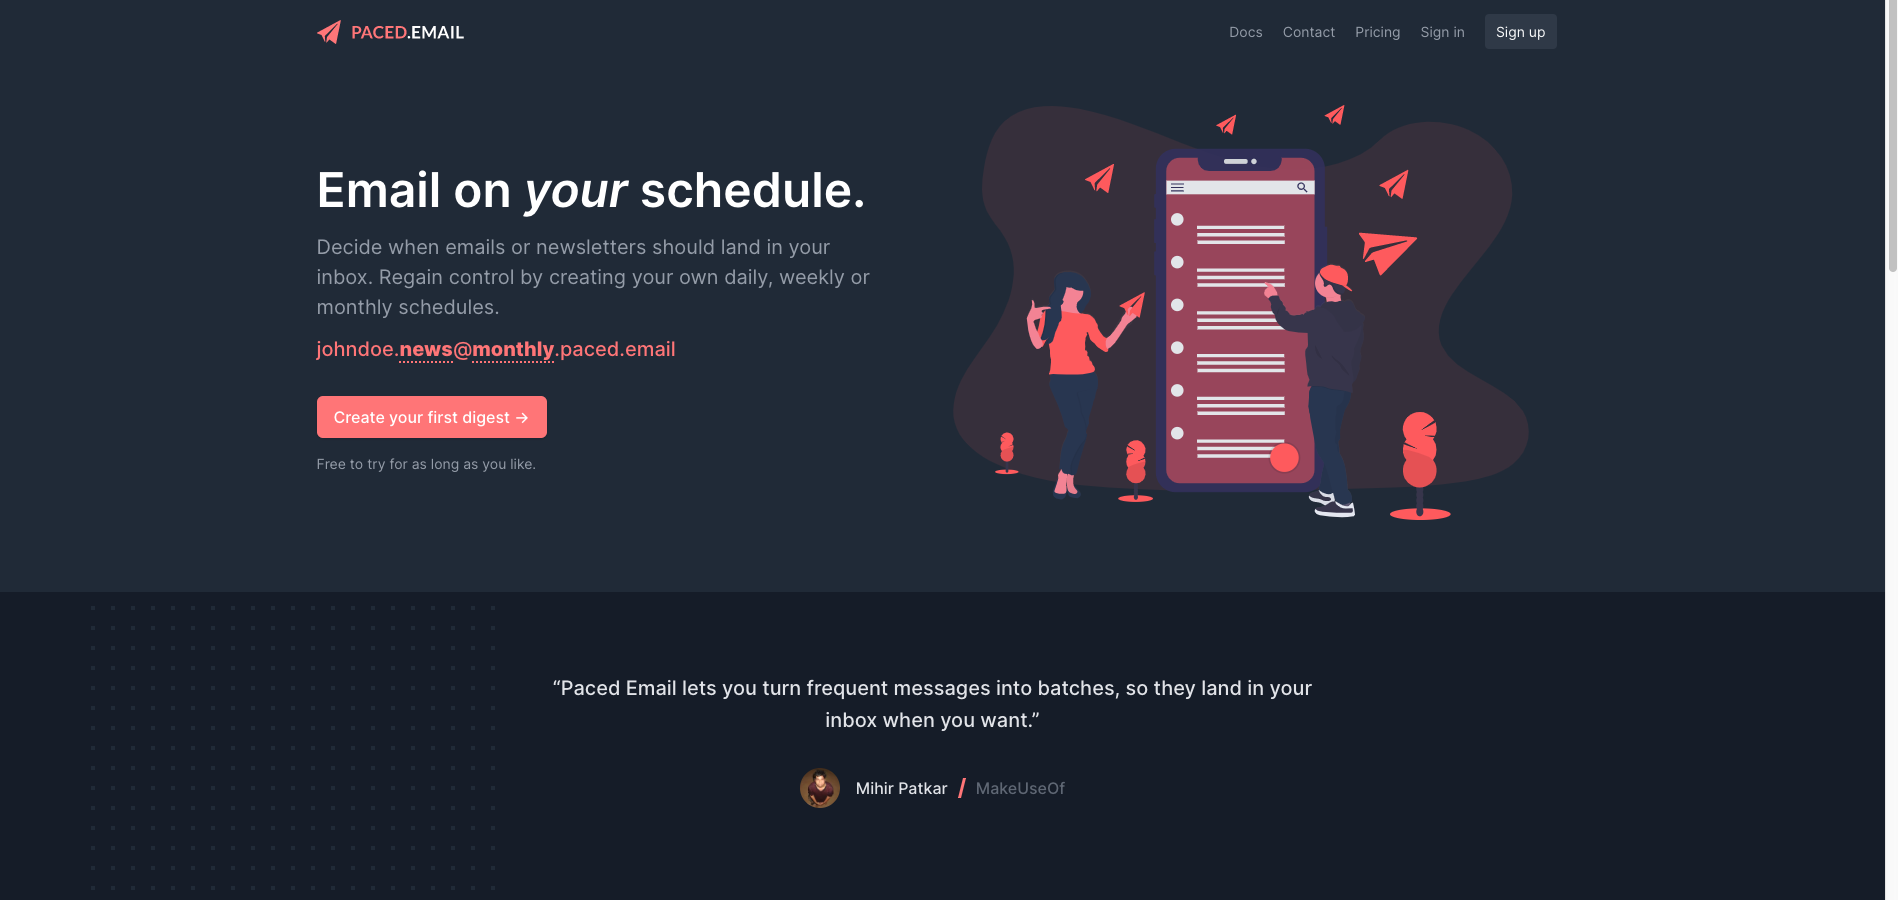 landing Page for Paced Email